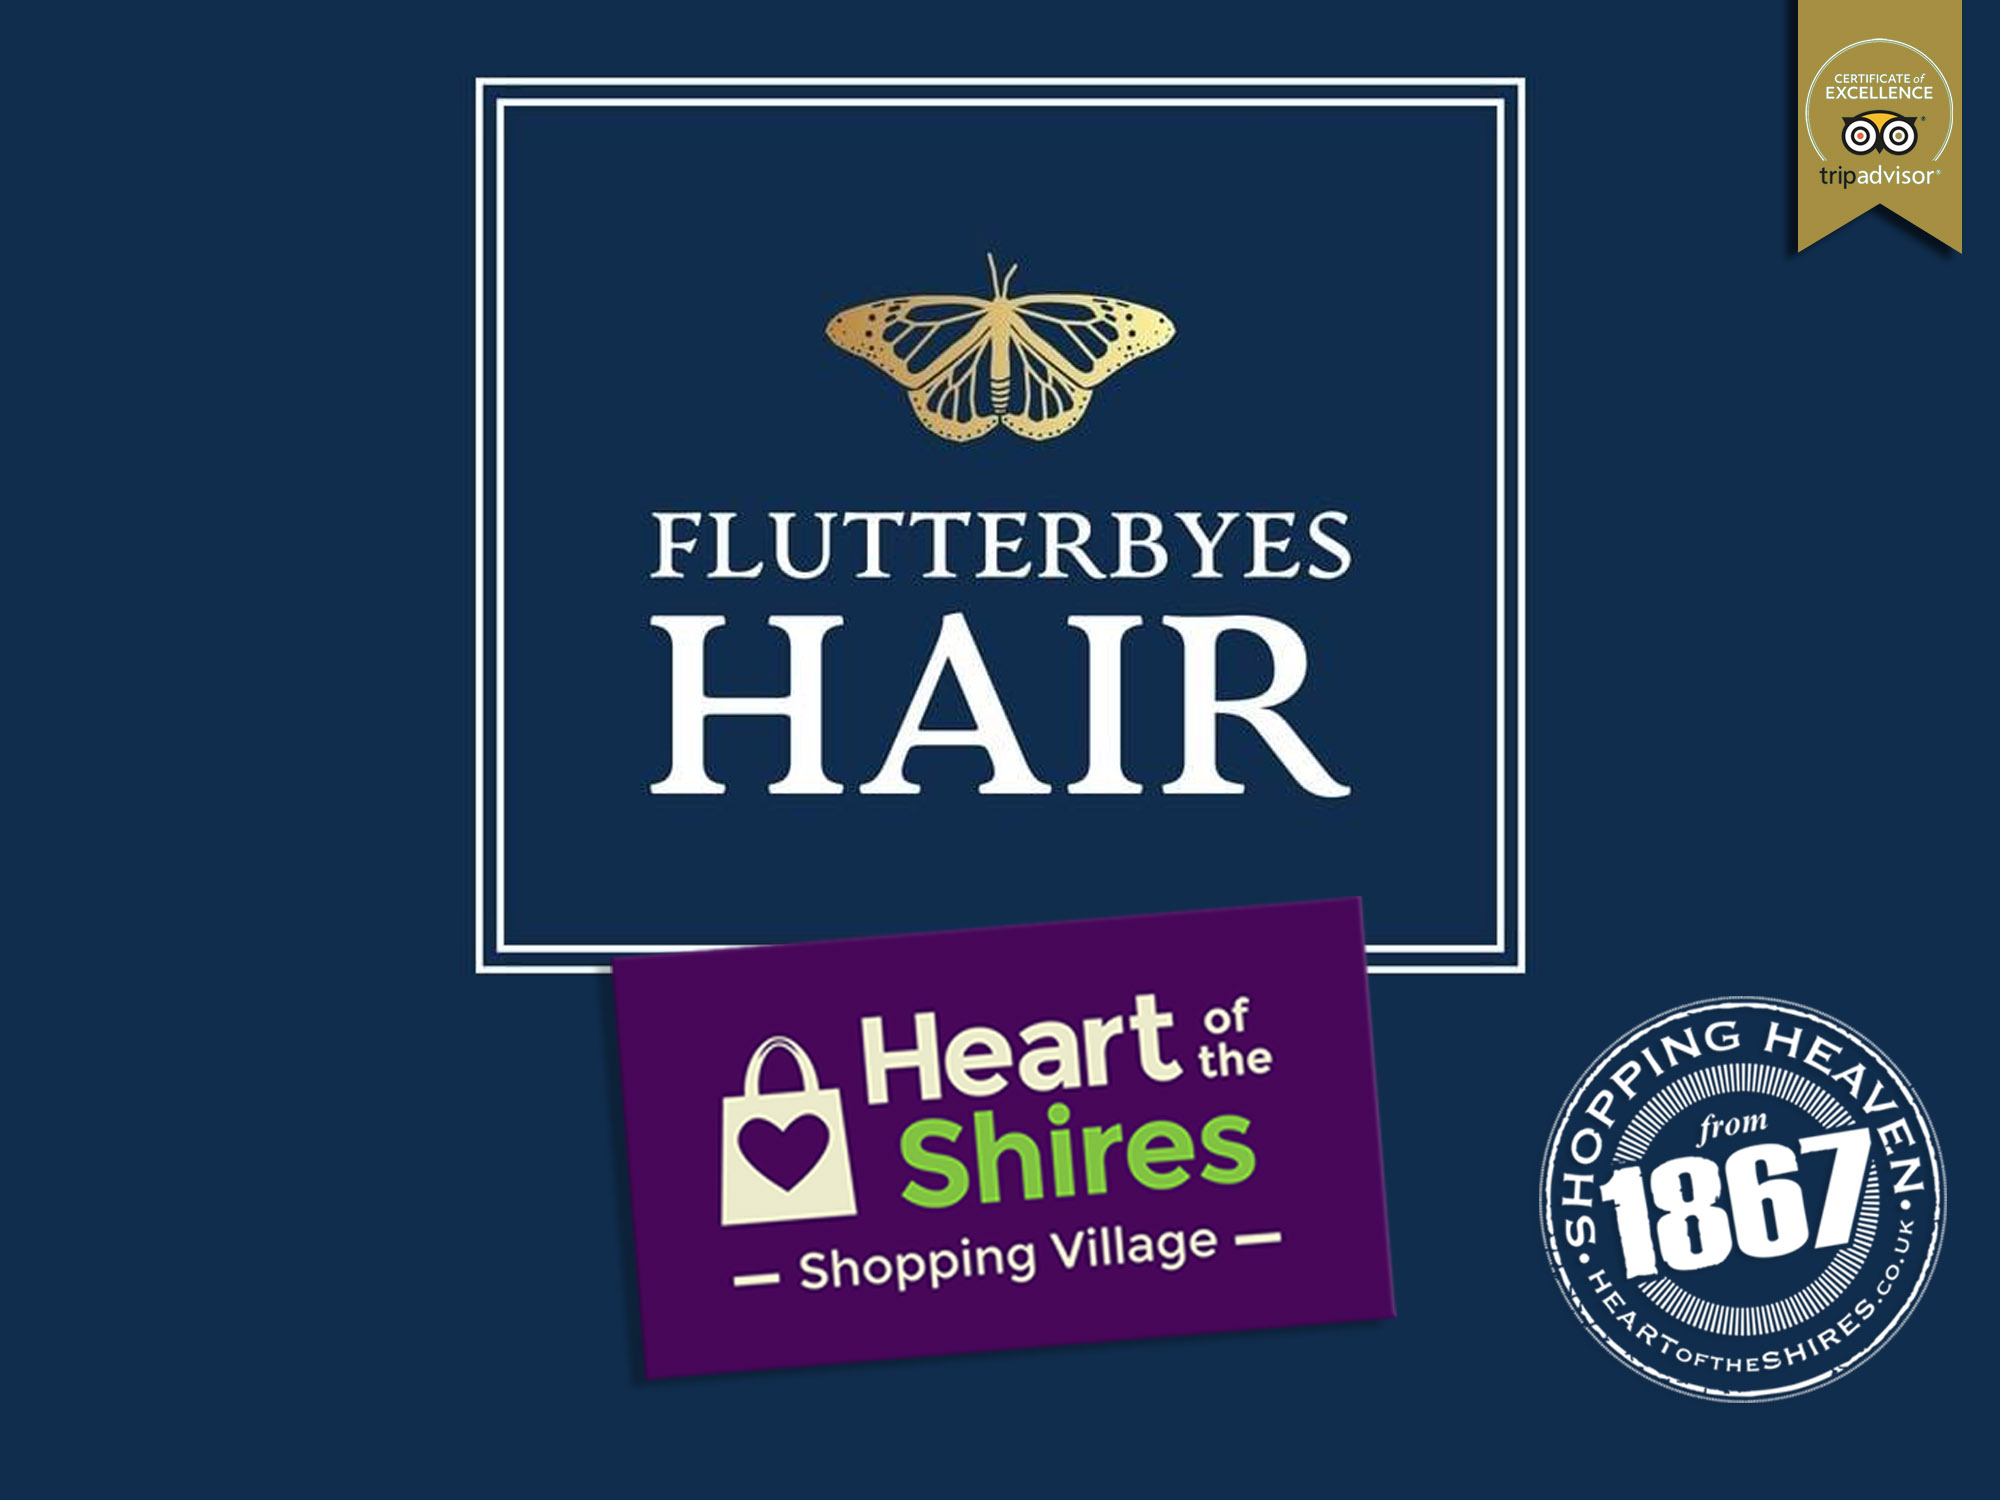 Heart of the Shires hairdresser